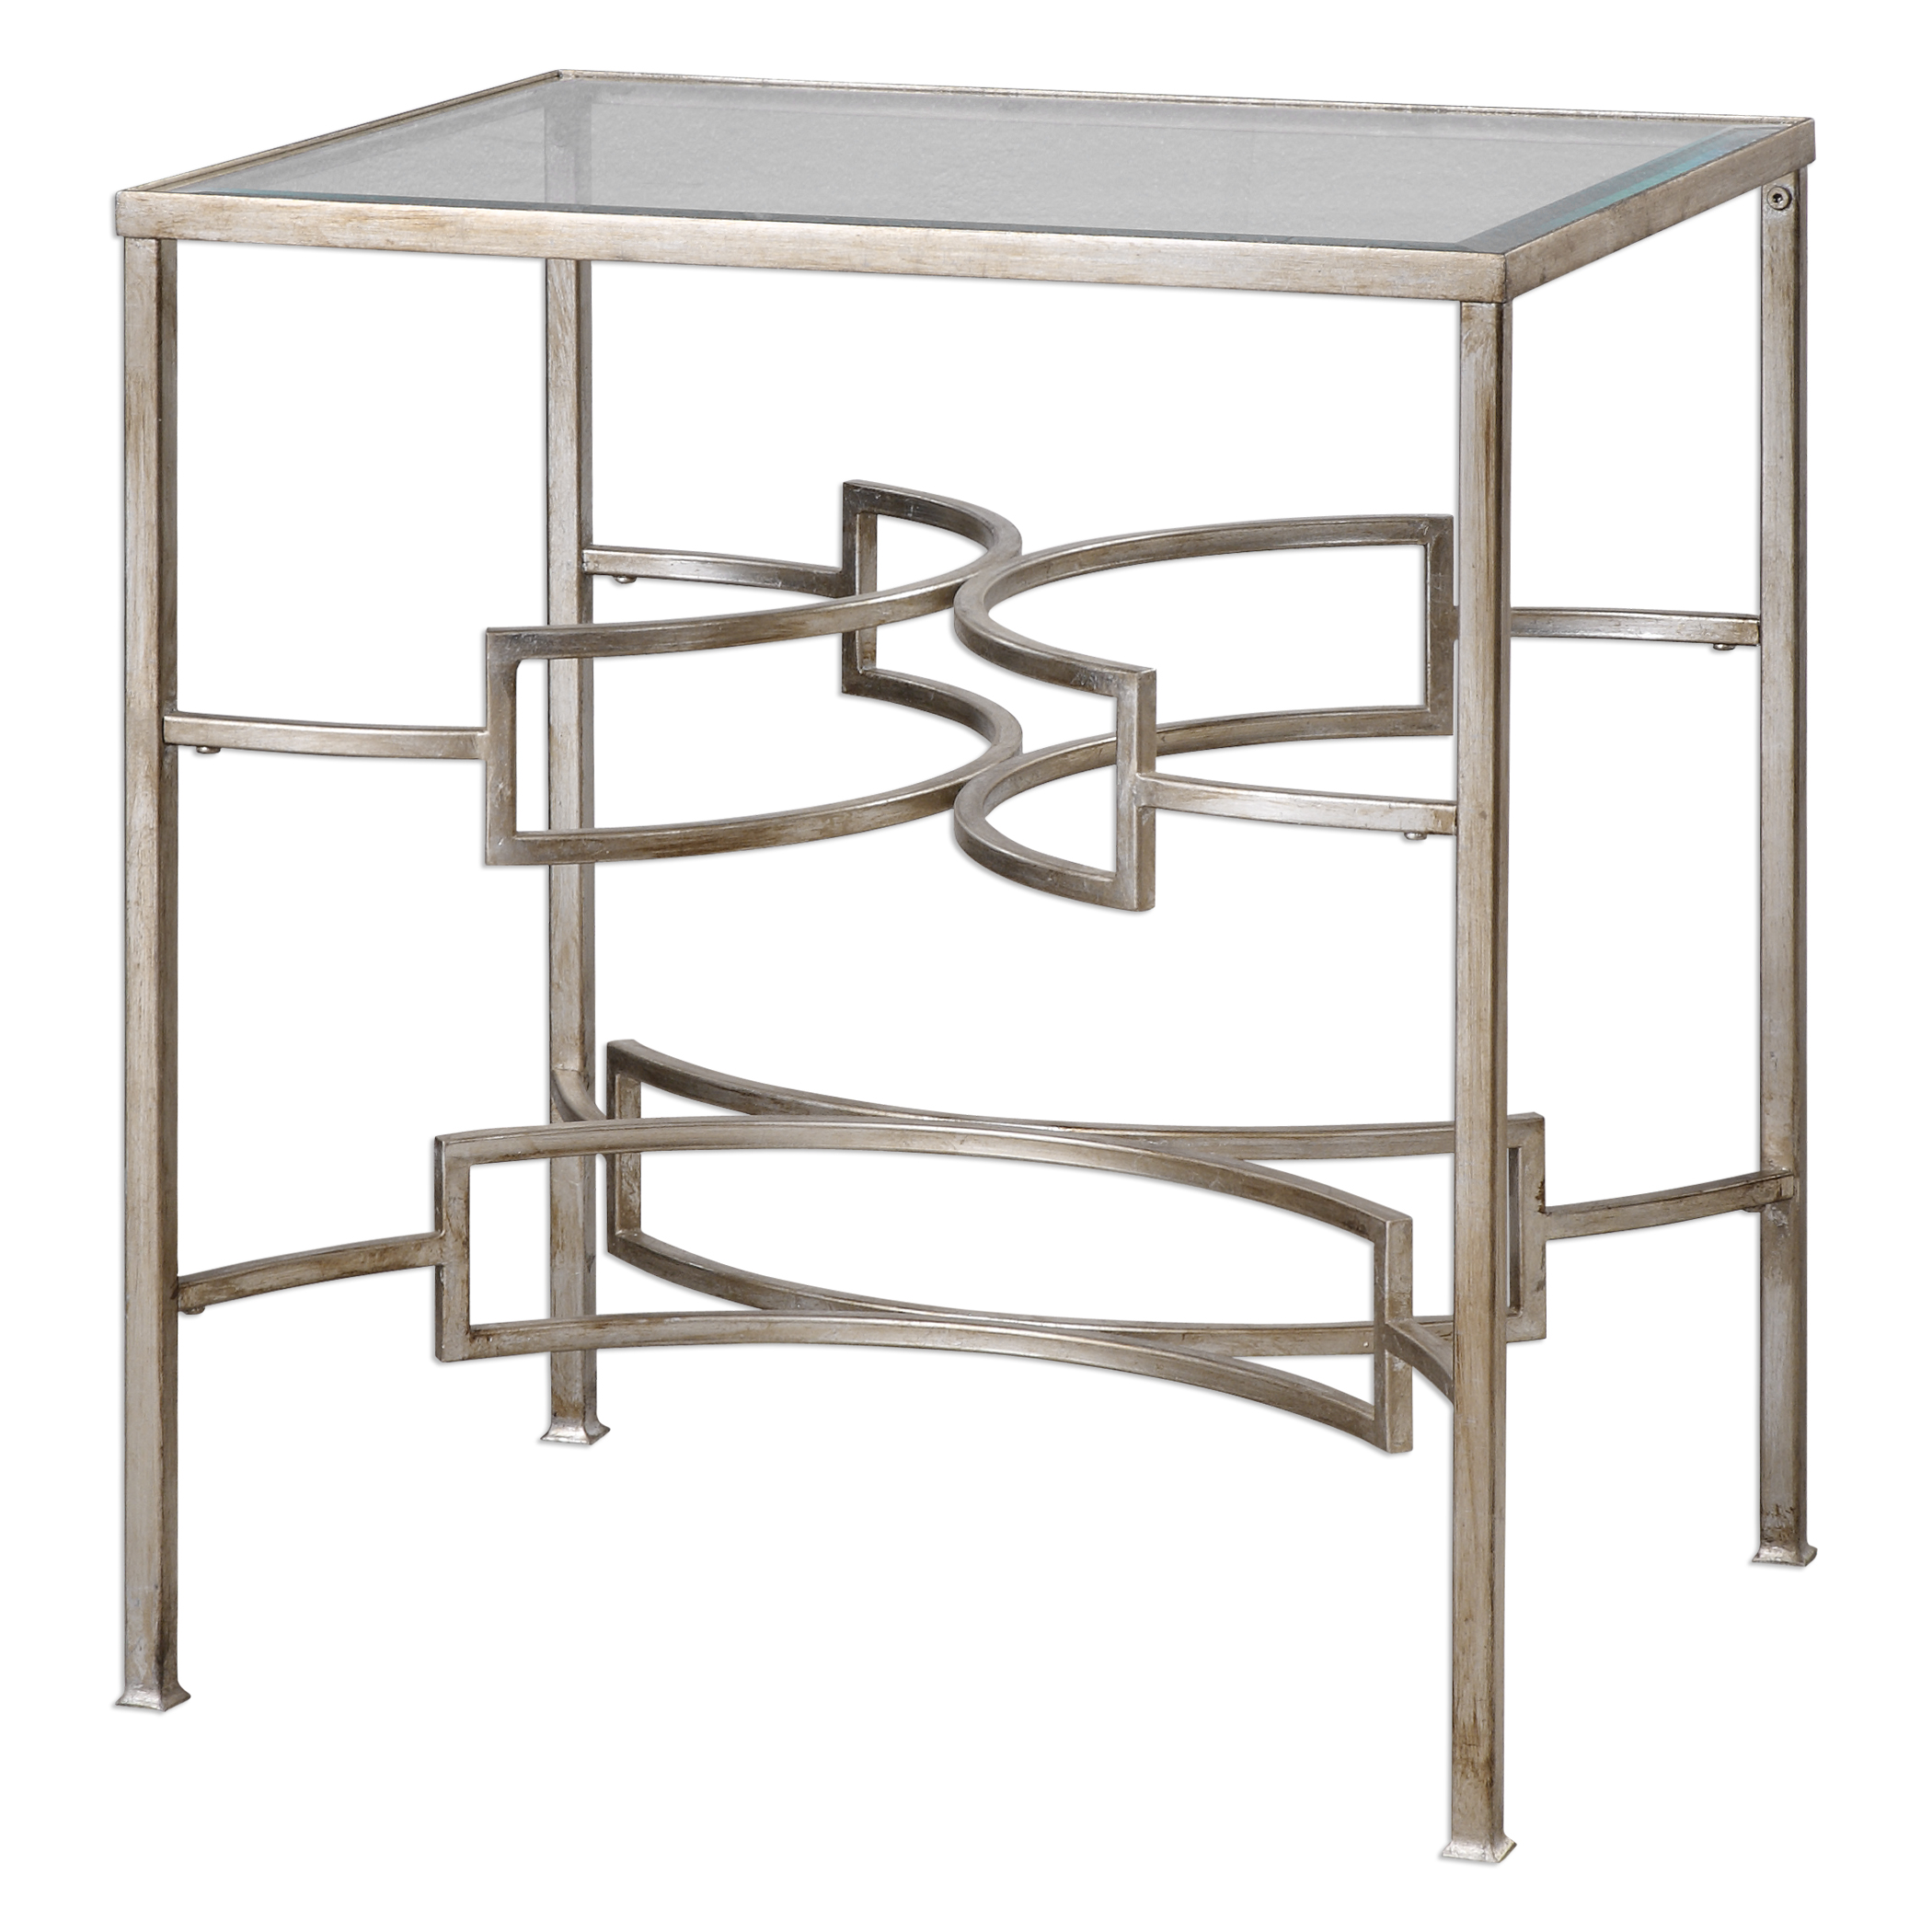 Uttermost Accent Furniture Eilinora Silver End Table - Item Number: 24635